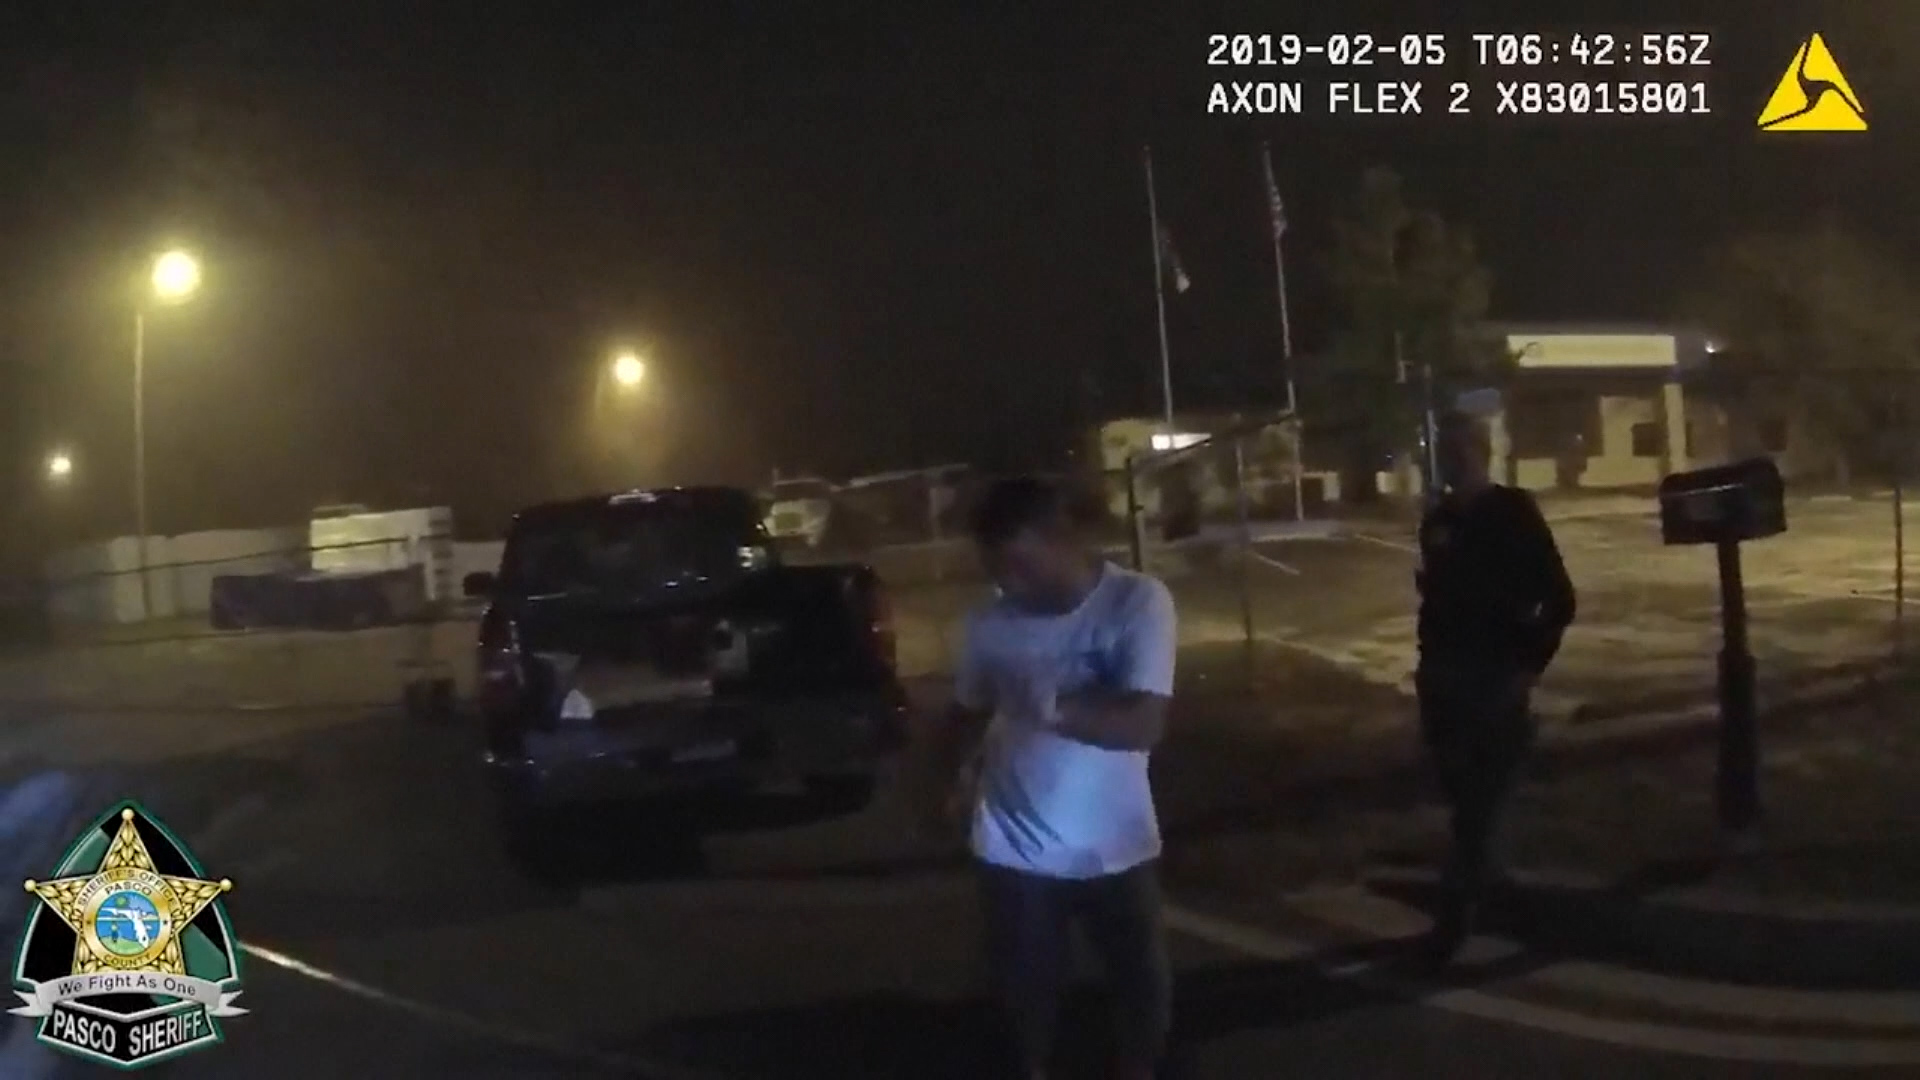 Florida DUI suspect dances way through sobriety test